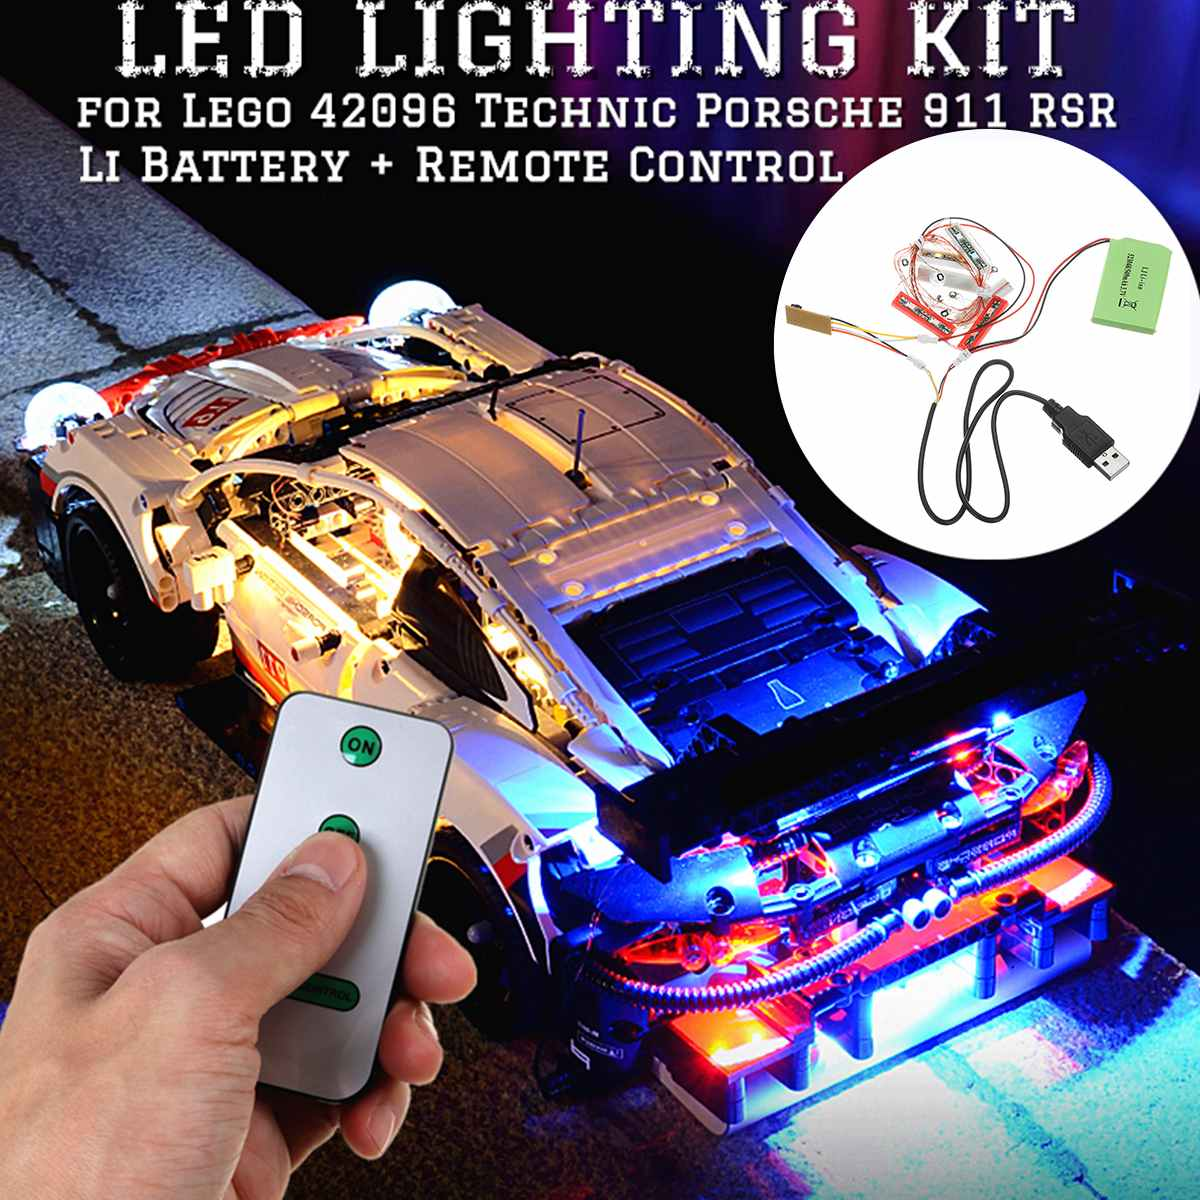 2020 NEW DIY LED Light Up Kit Lighting for <font><b>Lego</b></font> <font><b>42096</b></font> <font><b>Technic</b></font> 911 RSR Bricks Toys with Remote Control image